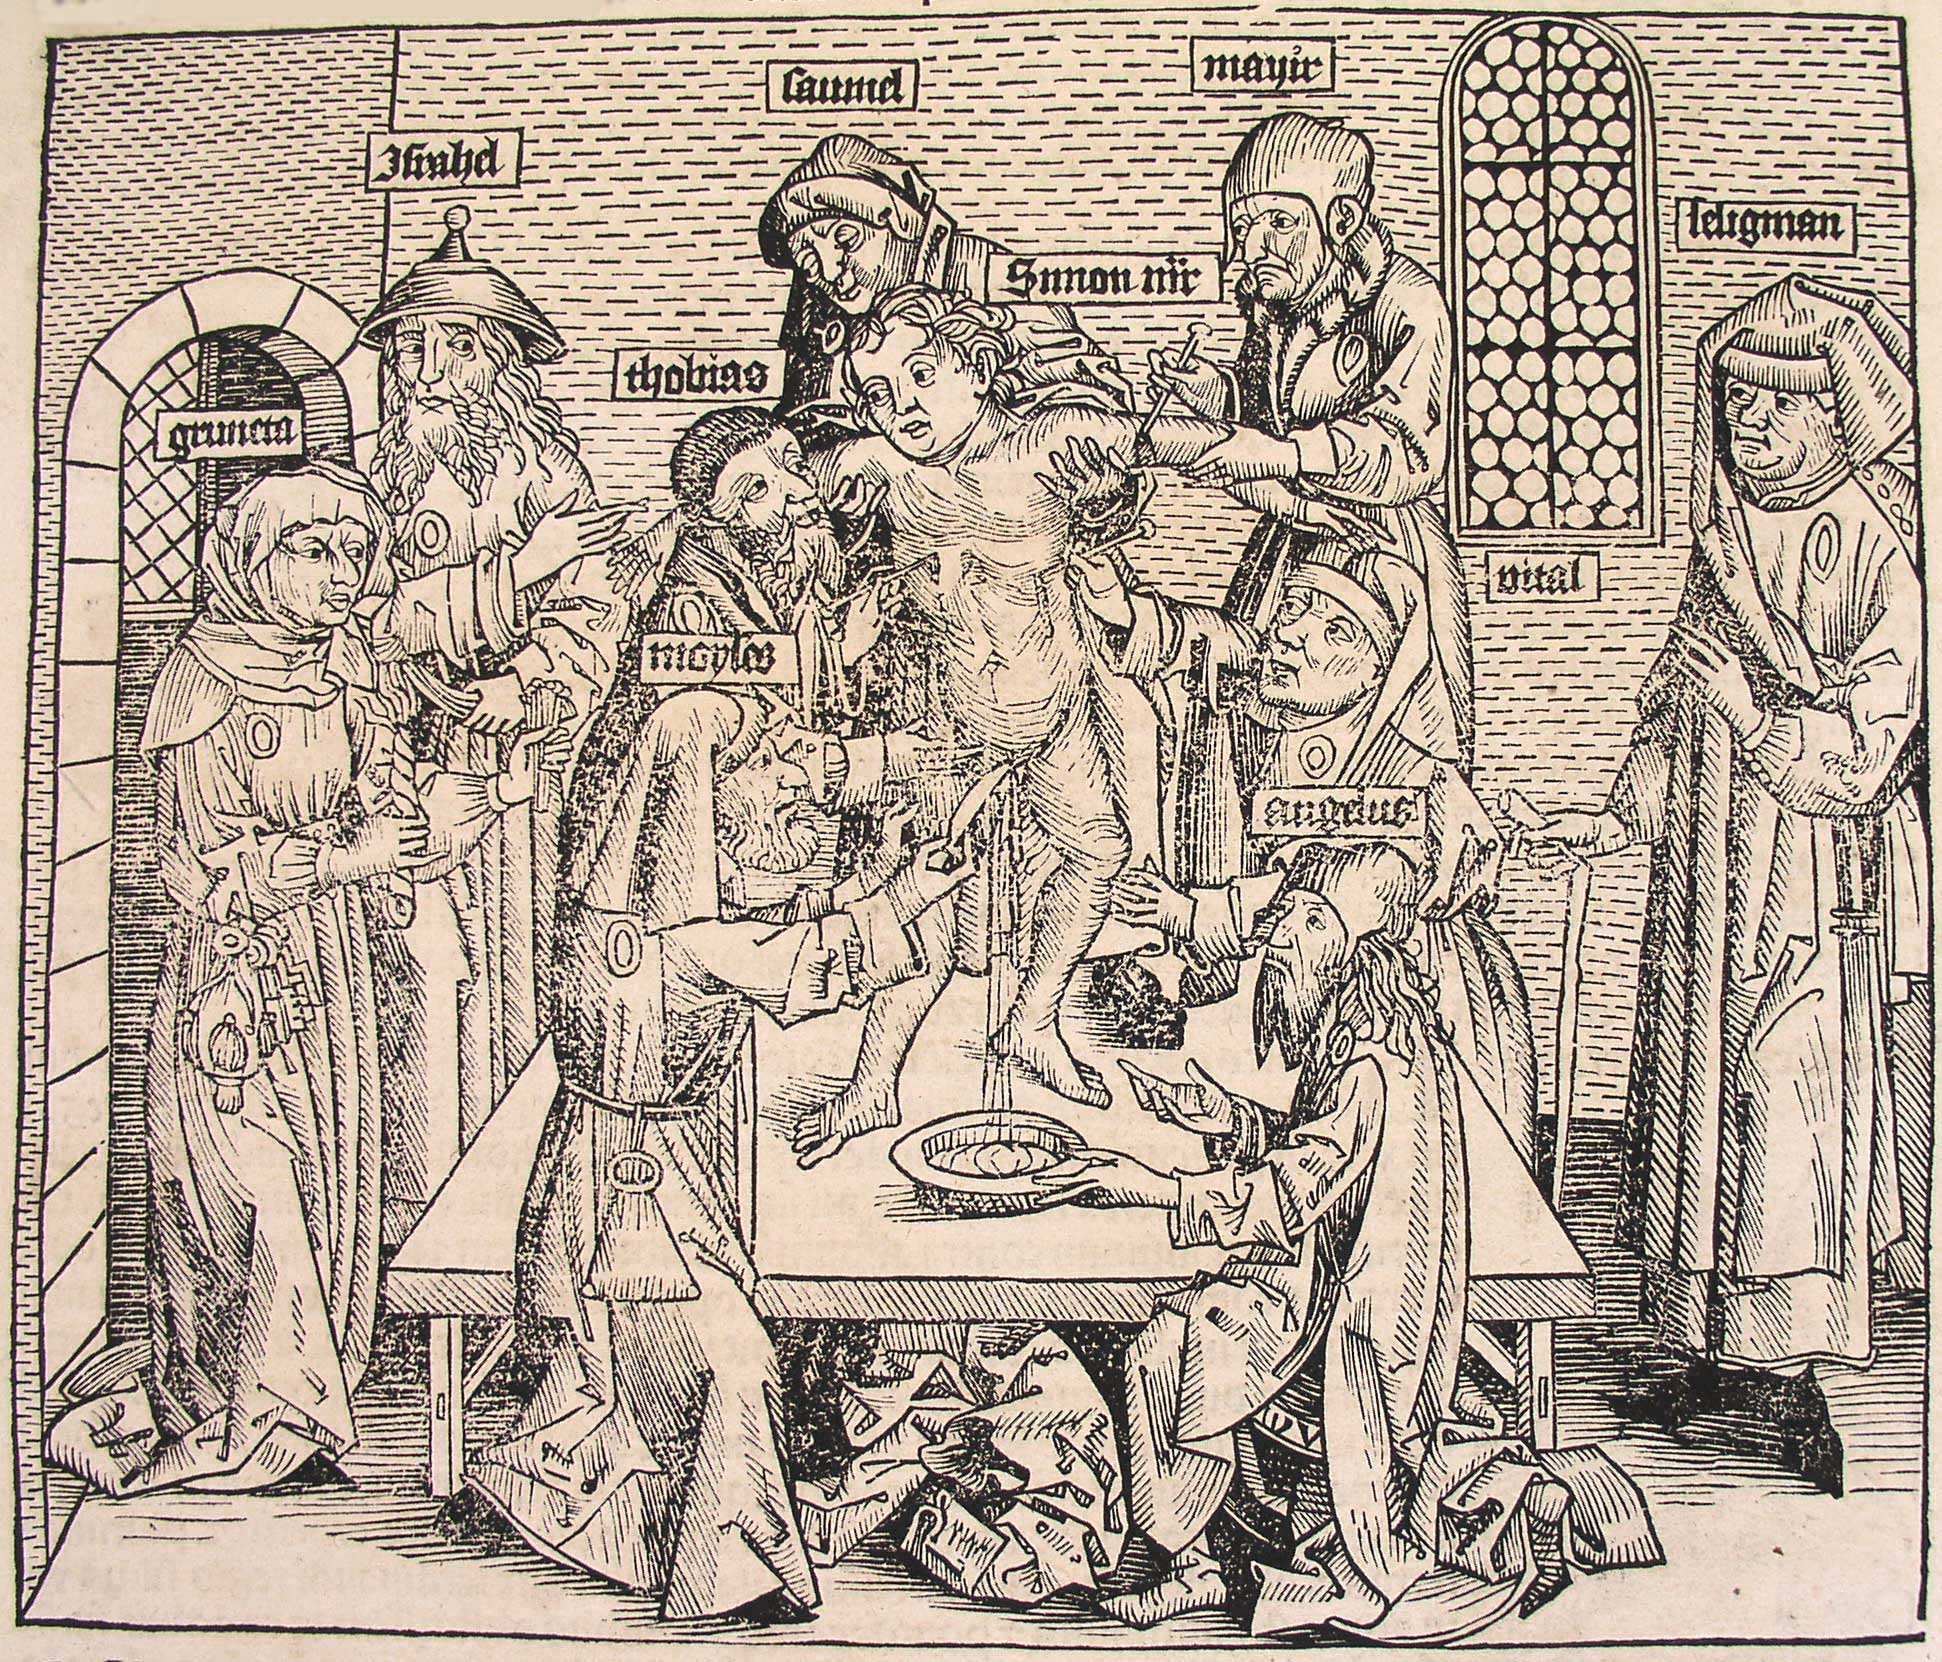 Hartmann Trento File Schedel Sche Weltchronik Sacrifice Of A Child Ccliii Jpg